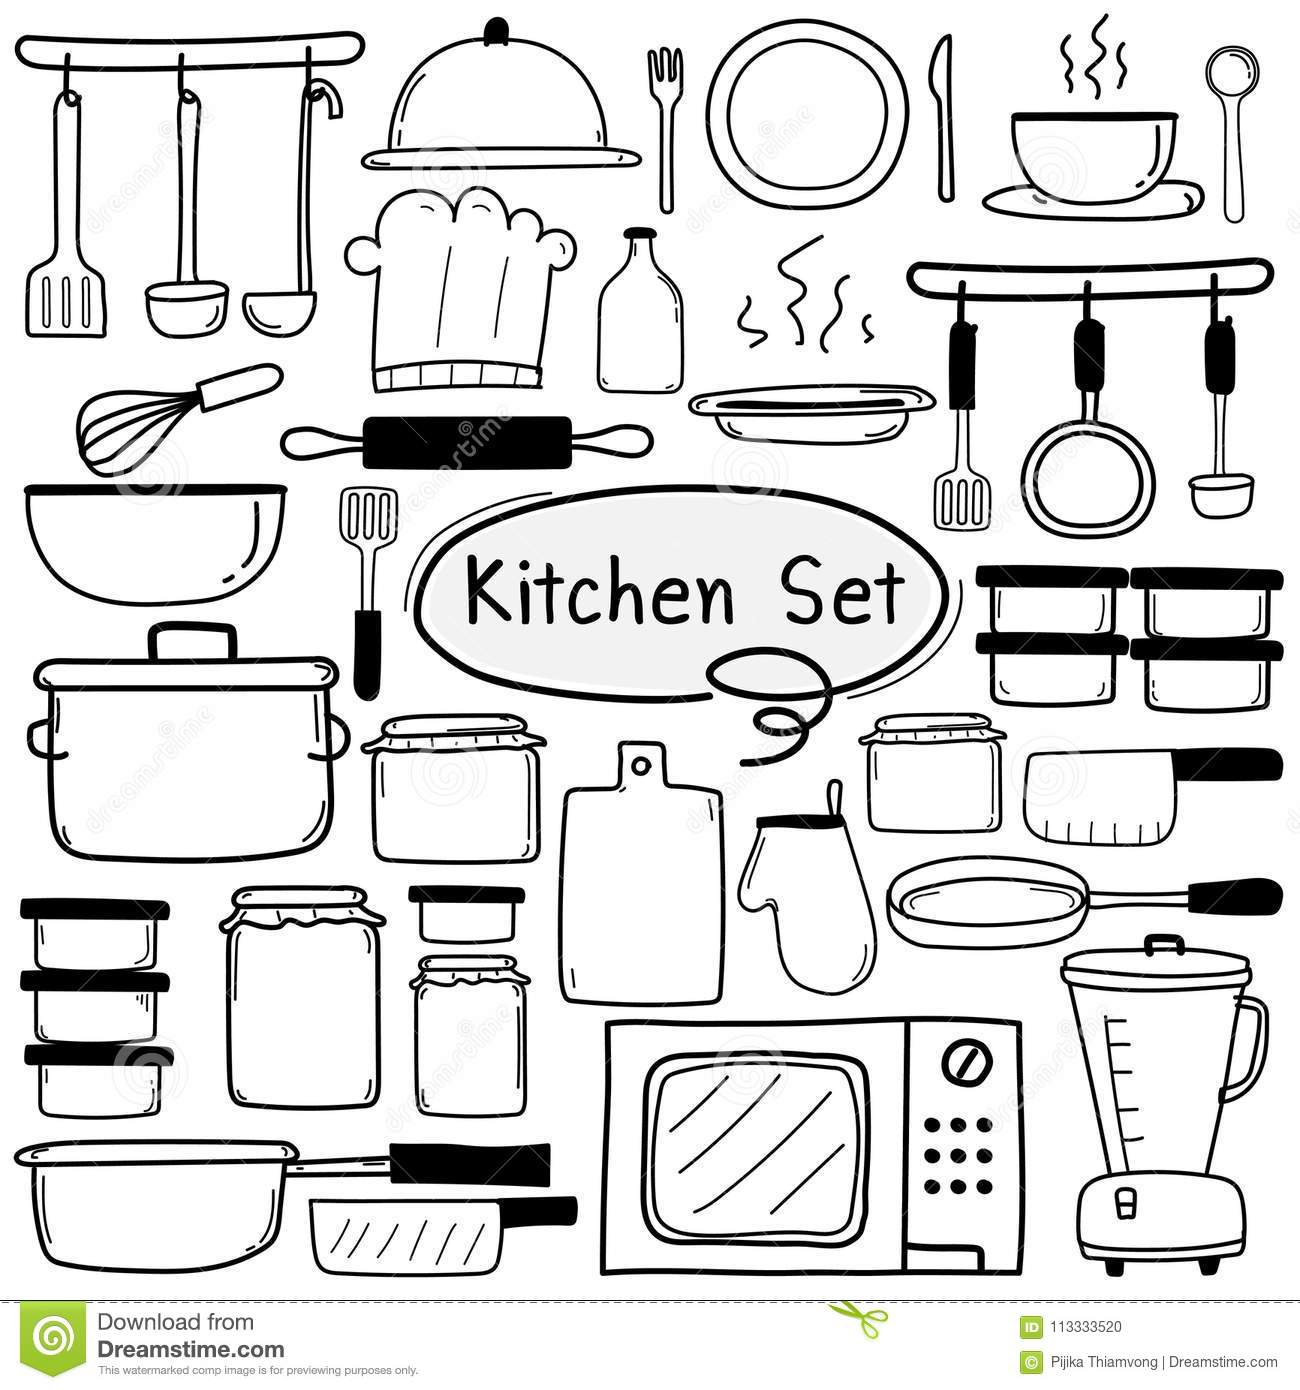 Line Hand Drawn Doodle Vector Kitchen Set Include Cooking Equipment